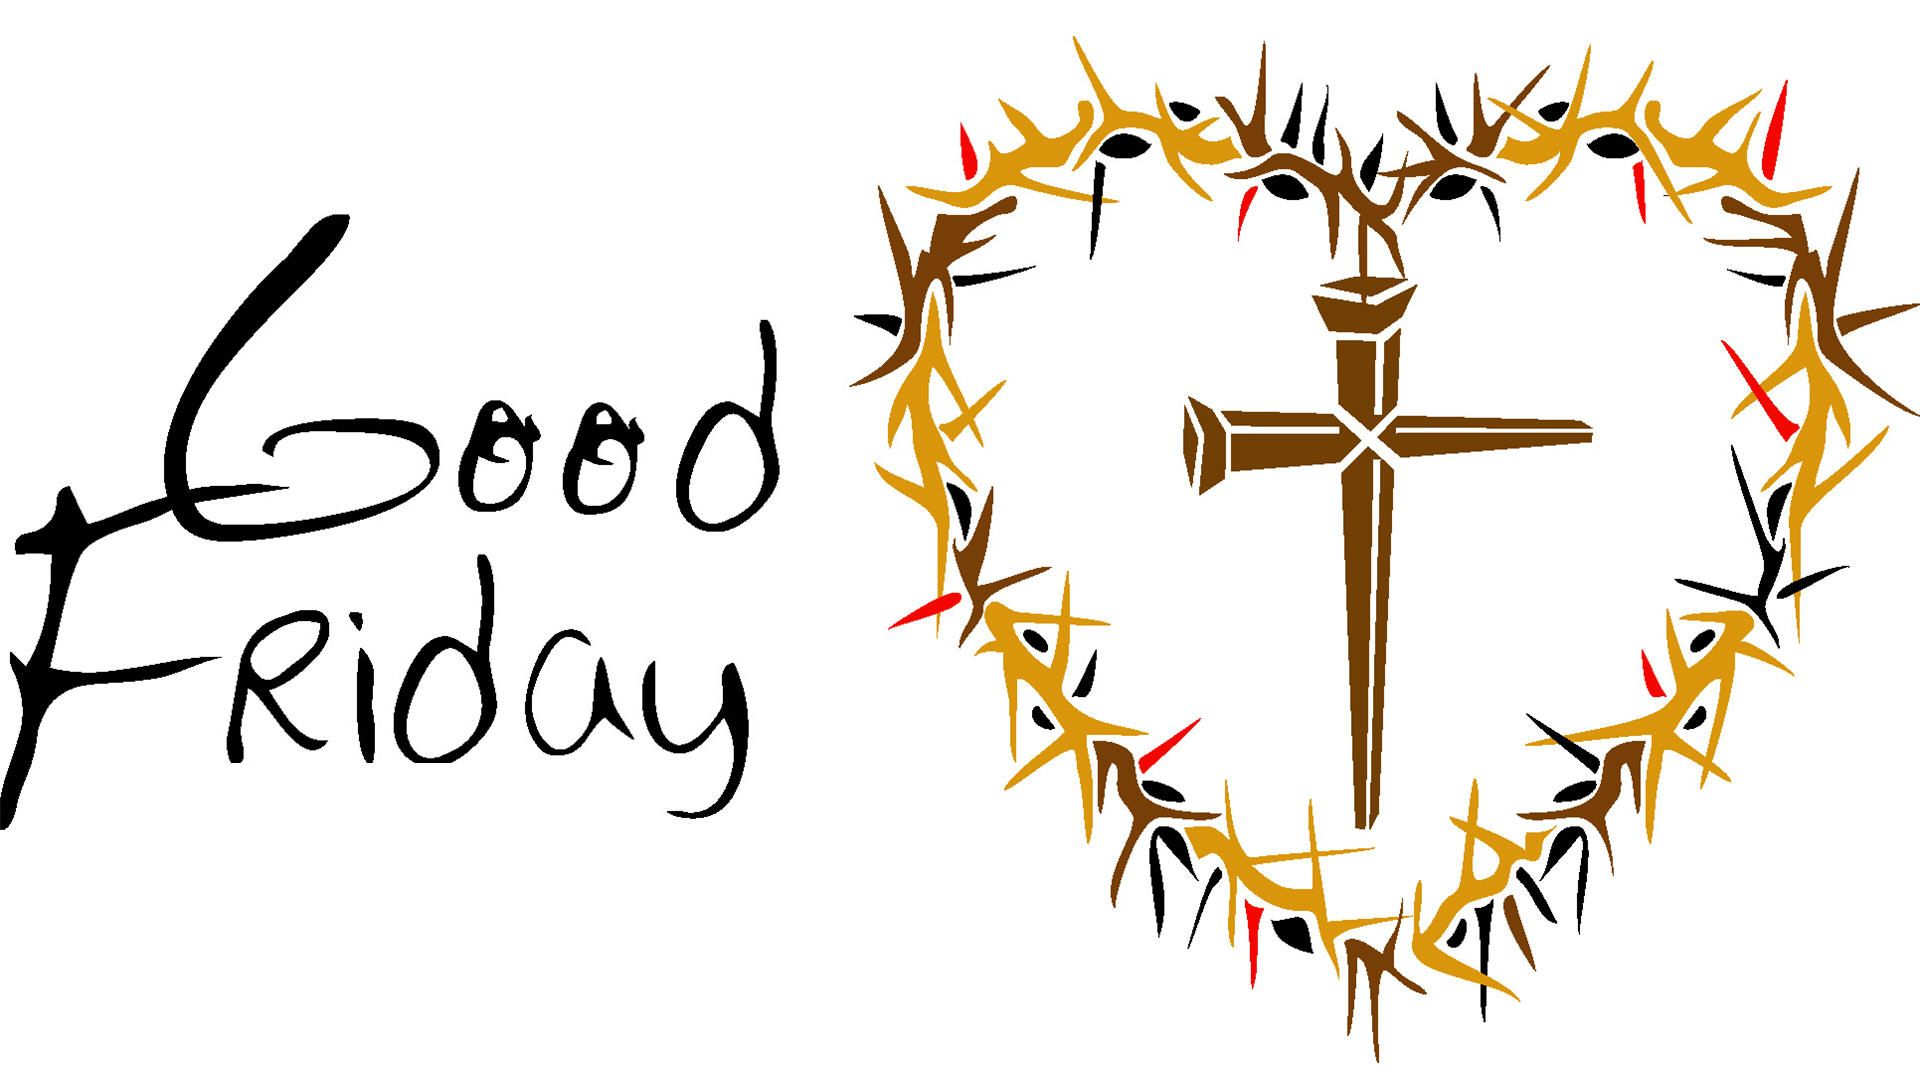 5-Good Friday Wishes